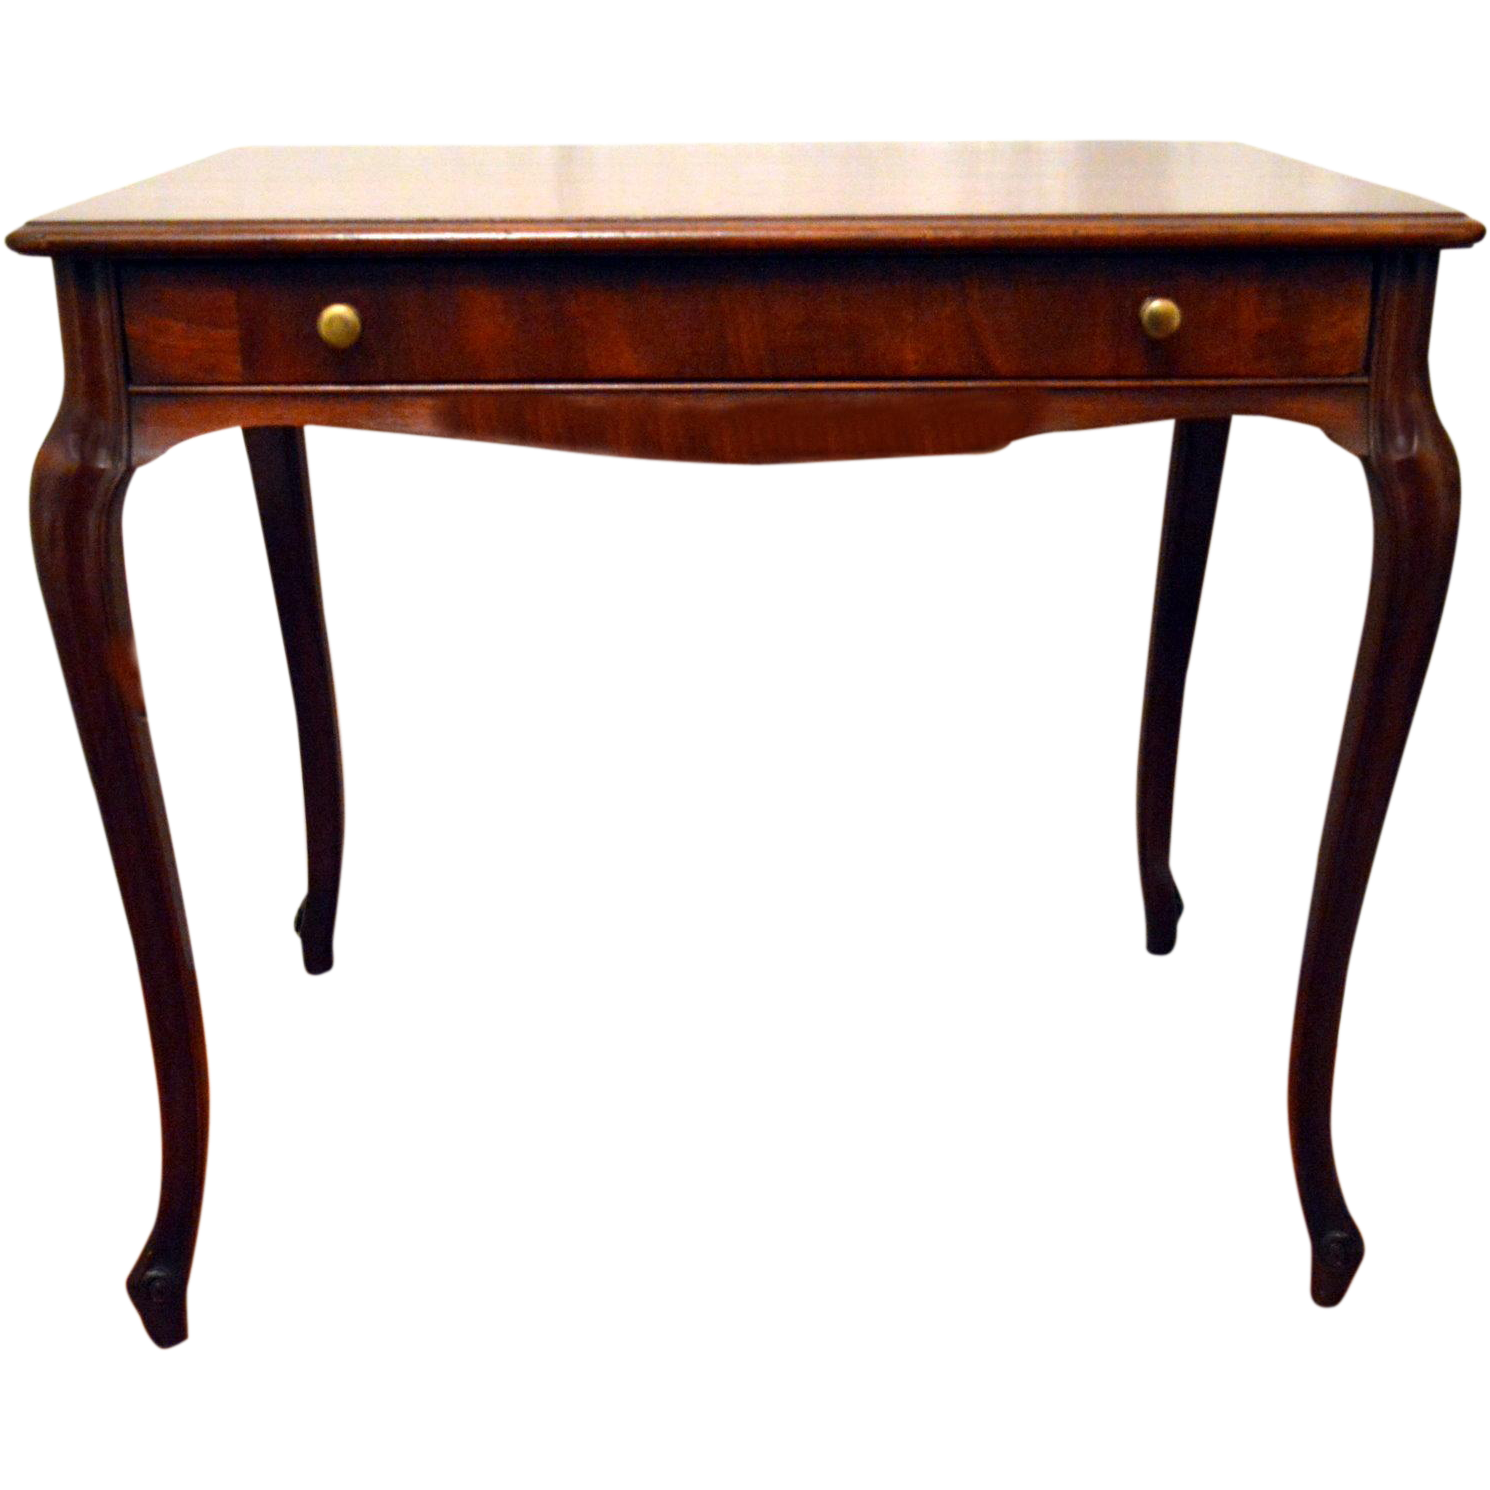 Awesome Mahogany Library Table Desk When Drawer Is Opened Pooley Furniture Co.